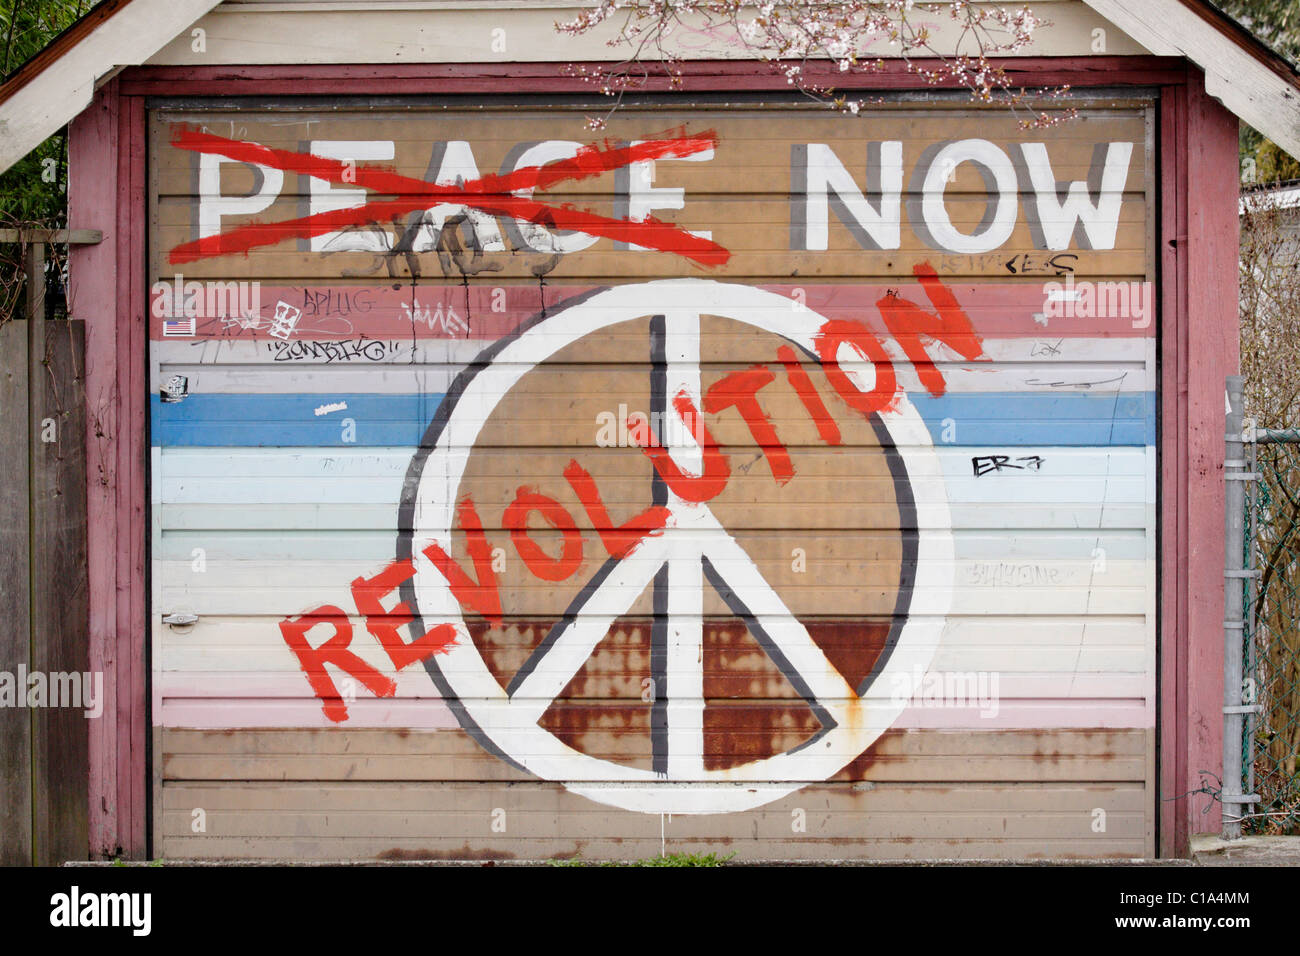 Peace and revolution sign graffiti painted on garage door-Victoria, British Columbia, Canada. - Stock Image